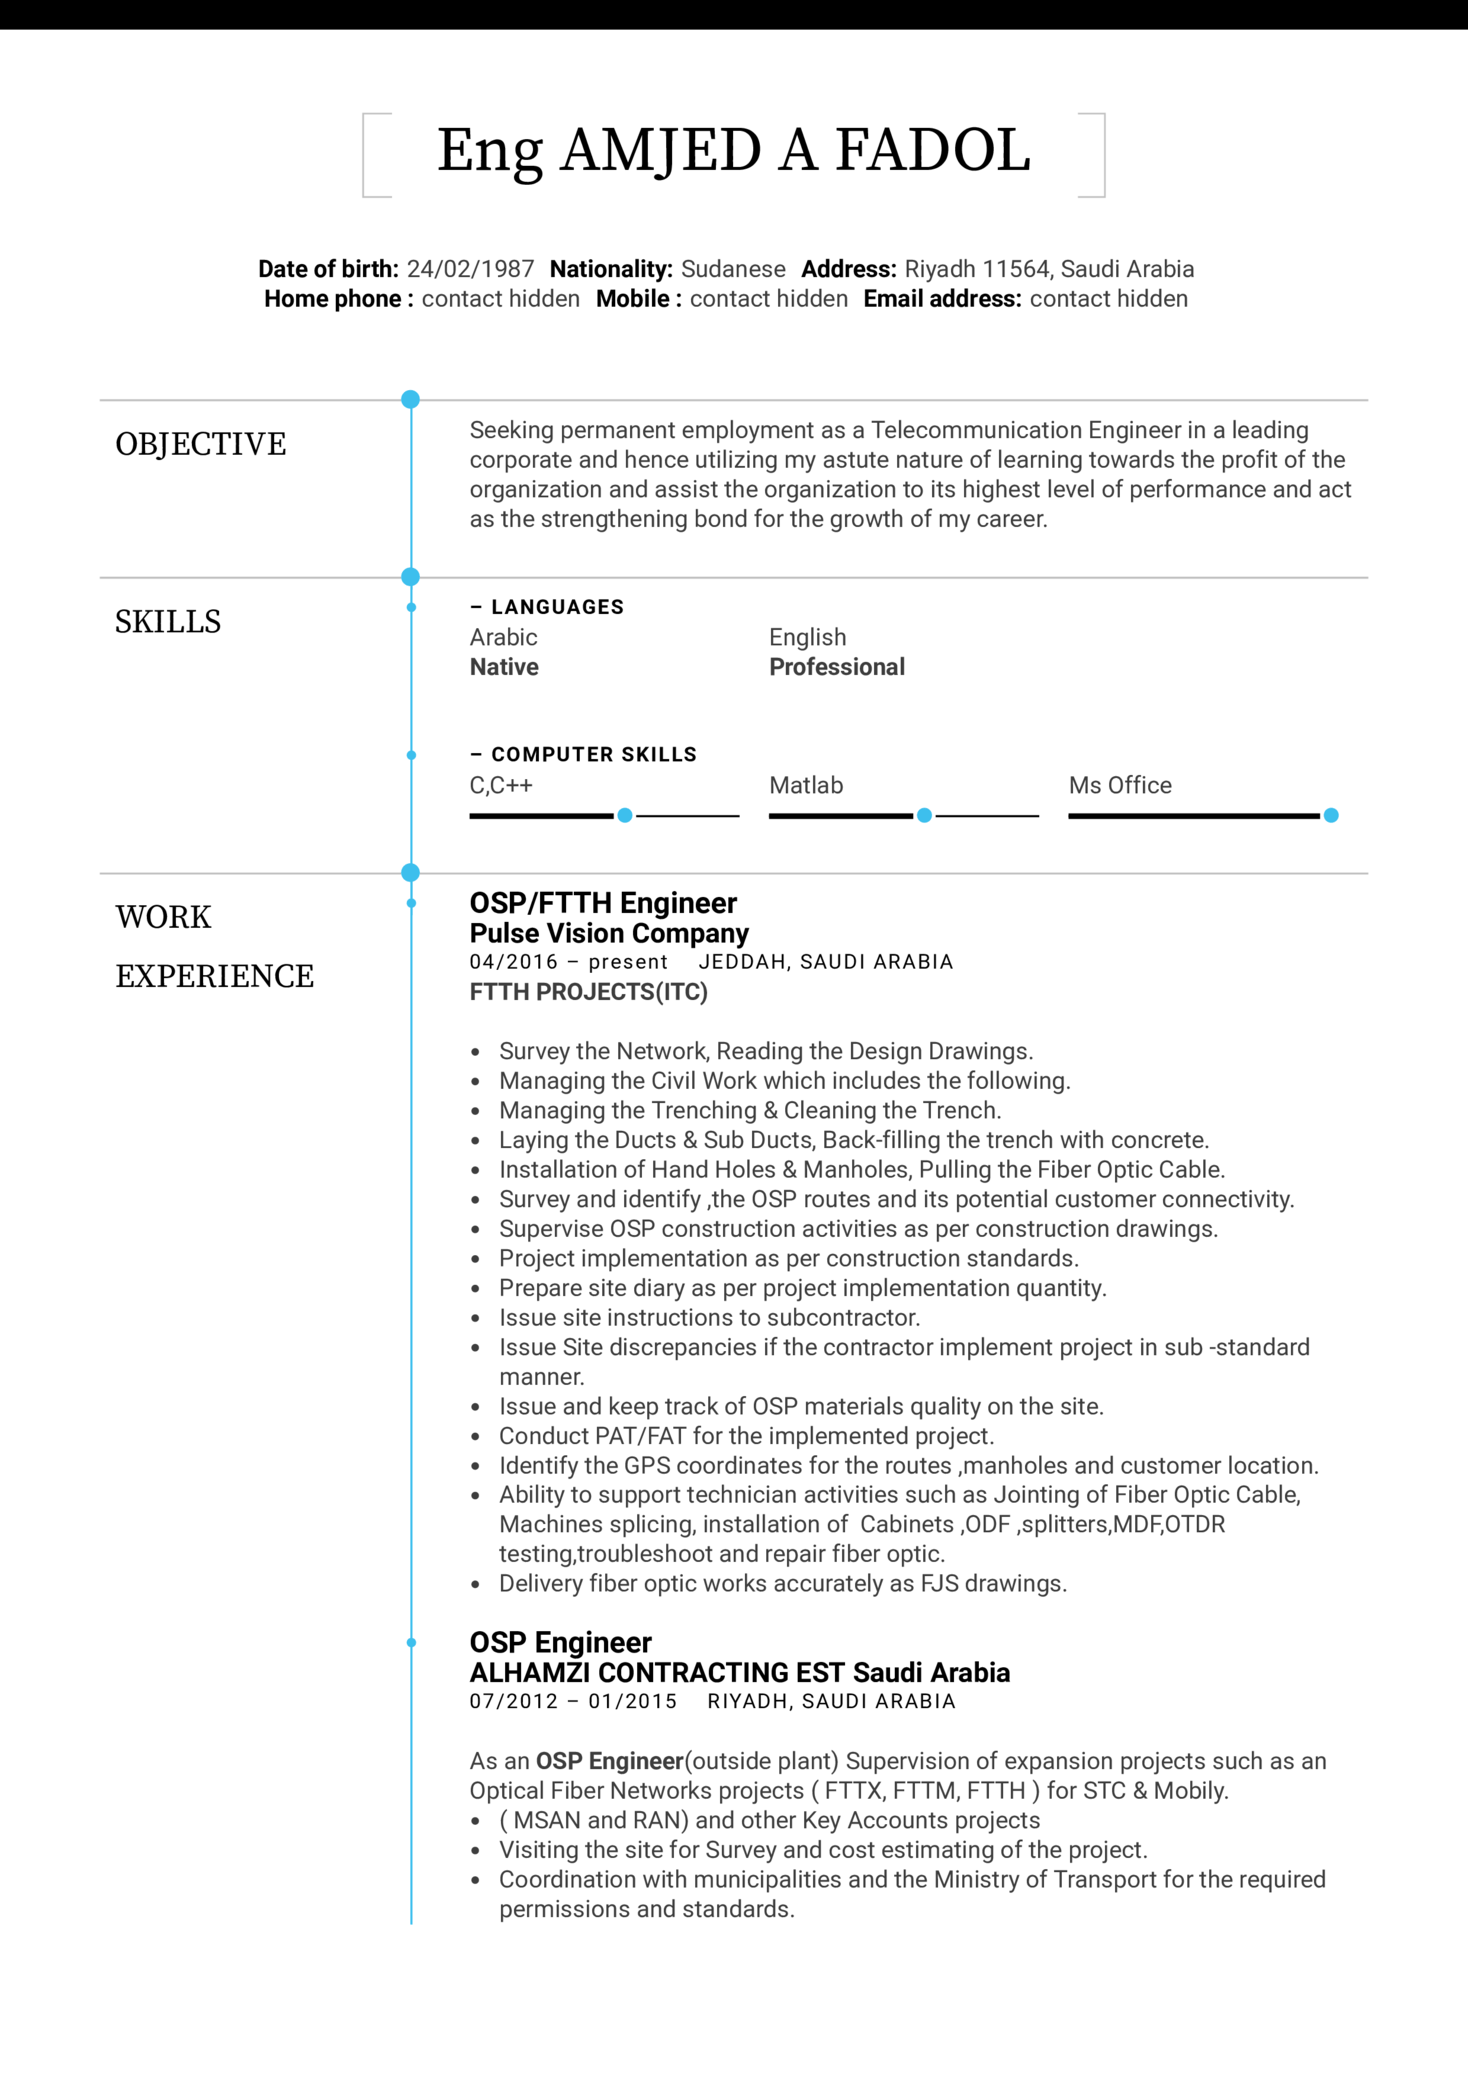 Engineering Resume Builder Resume Examples By Real People Osp Engineer Resume Template